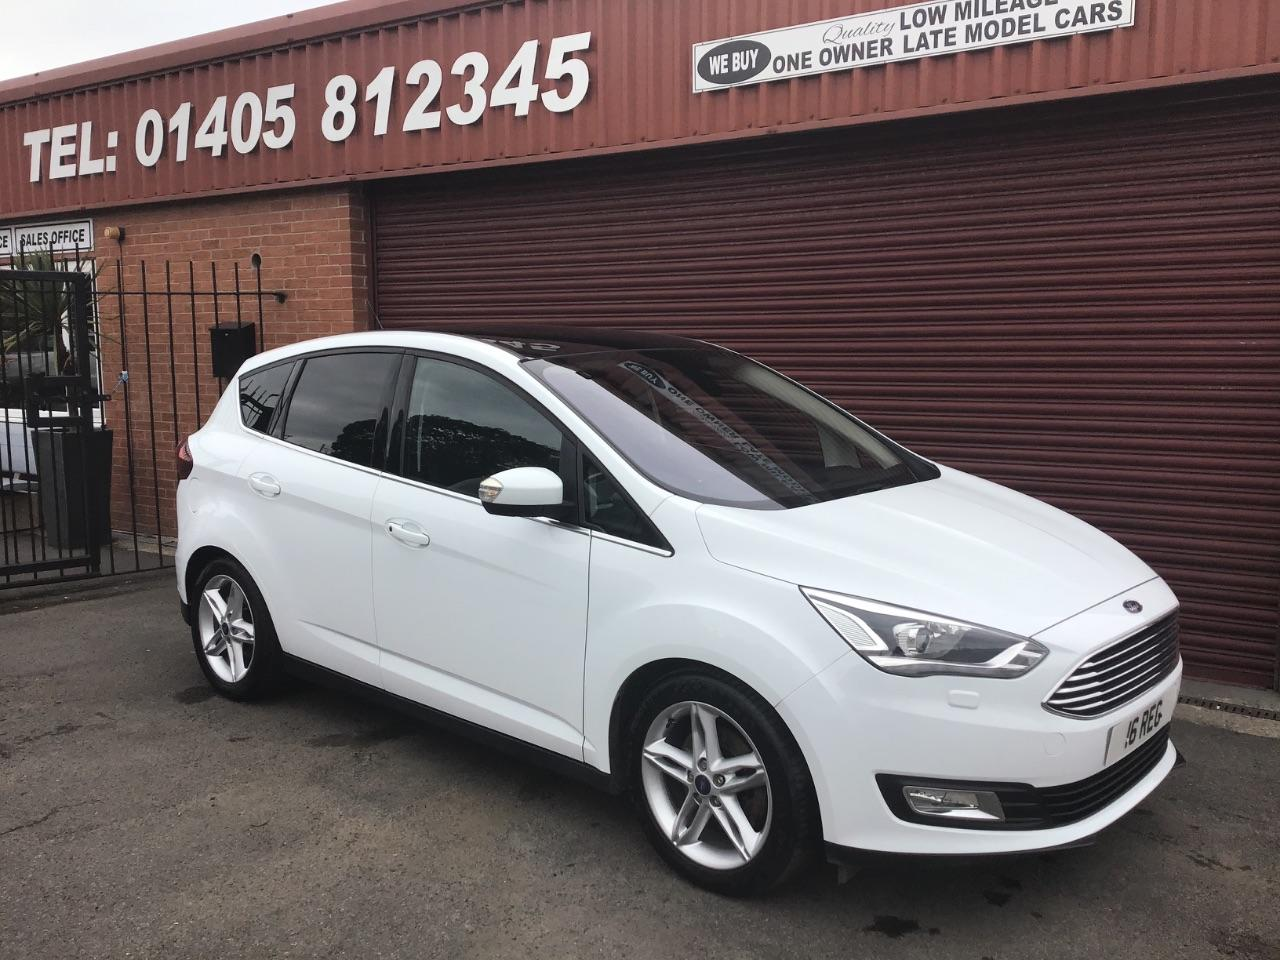 Ford C-MAX 2.0 TDCi Titanium X 5dr Powershift PANORAMIC ROOF / SAT NAV / PRIVATE PLATE INCLUDED MPV Diesel White